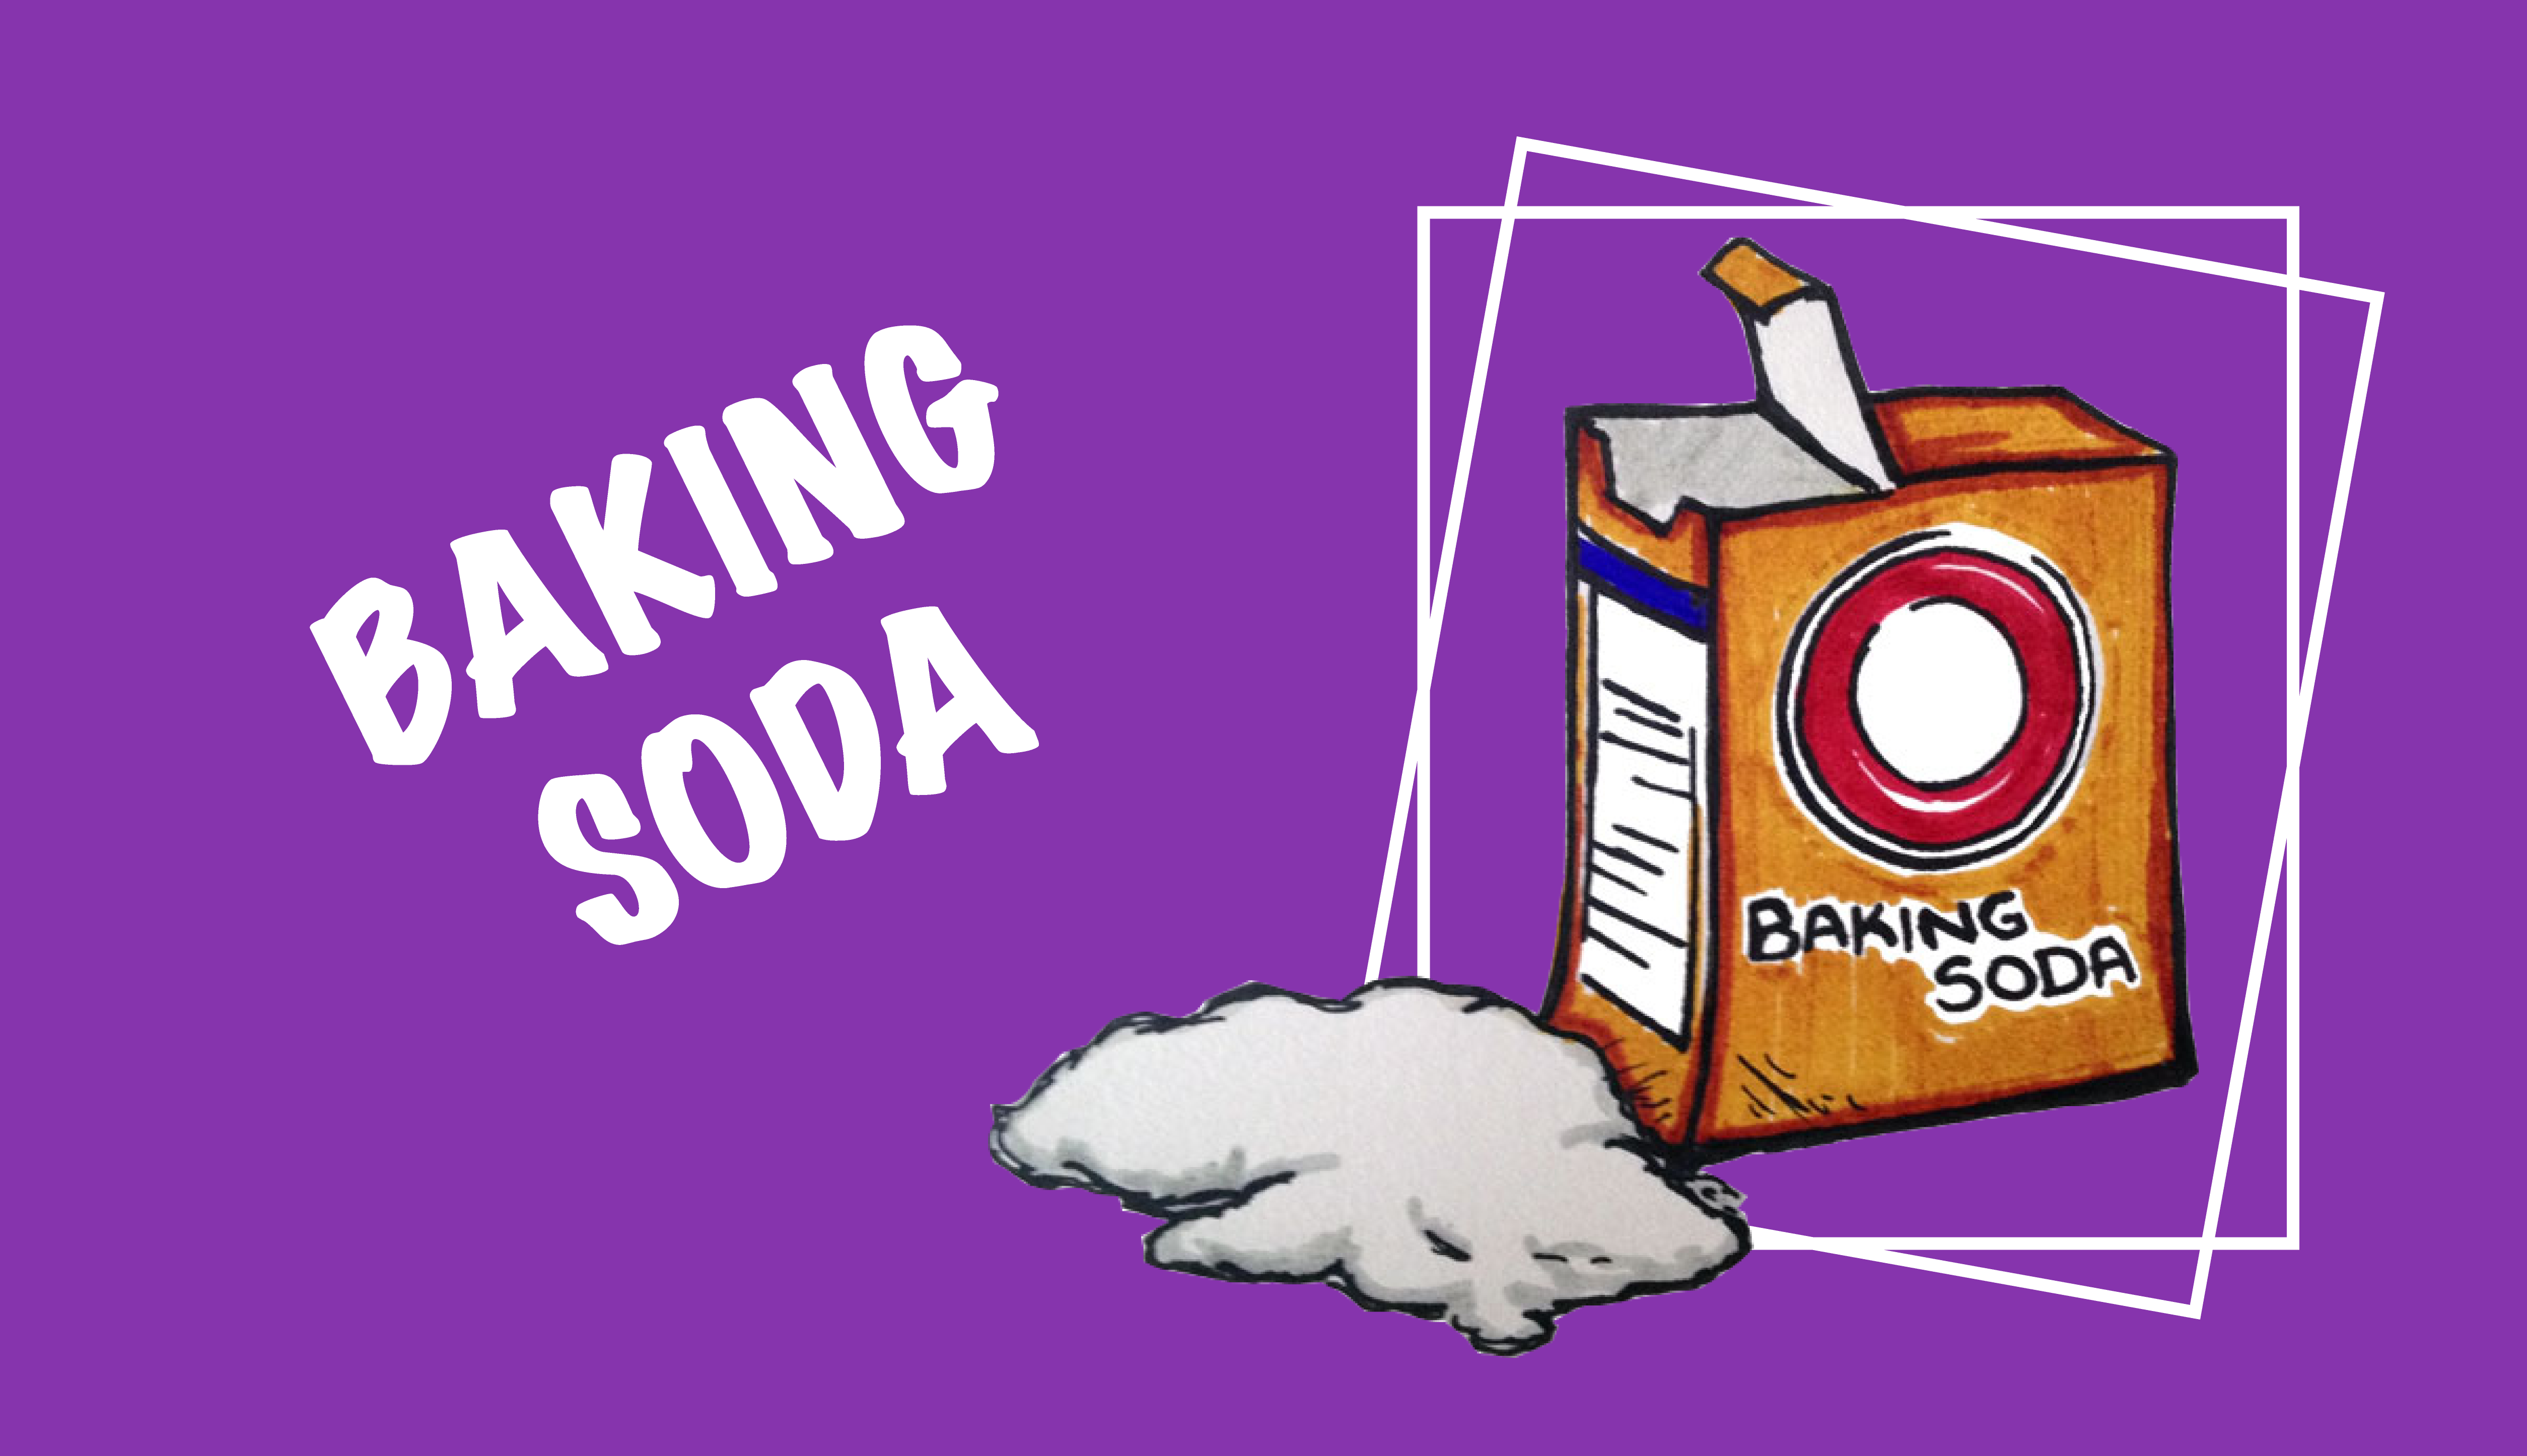 bakingsoda_purple